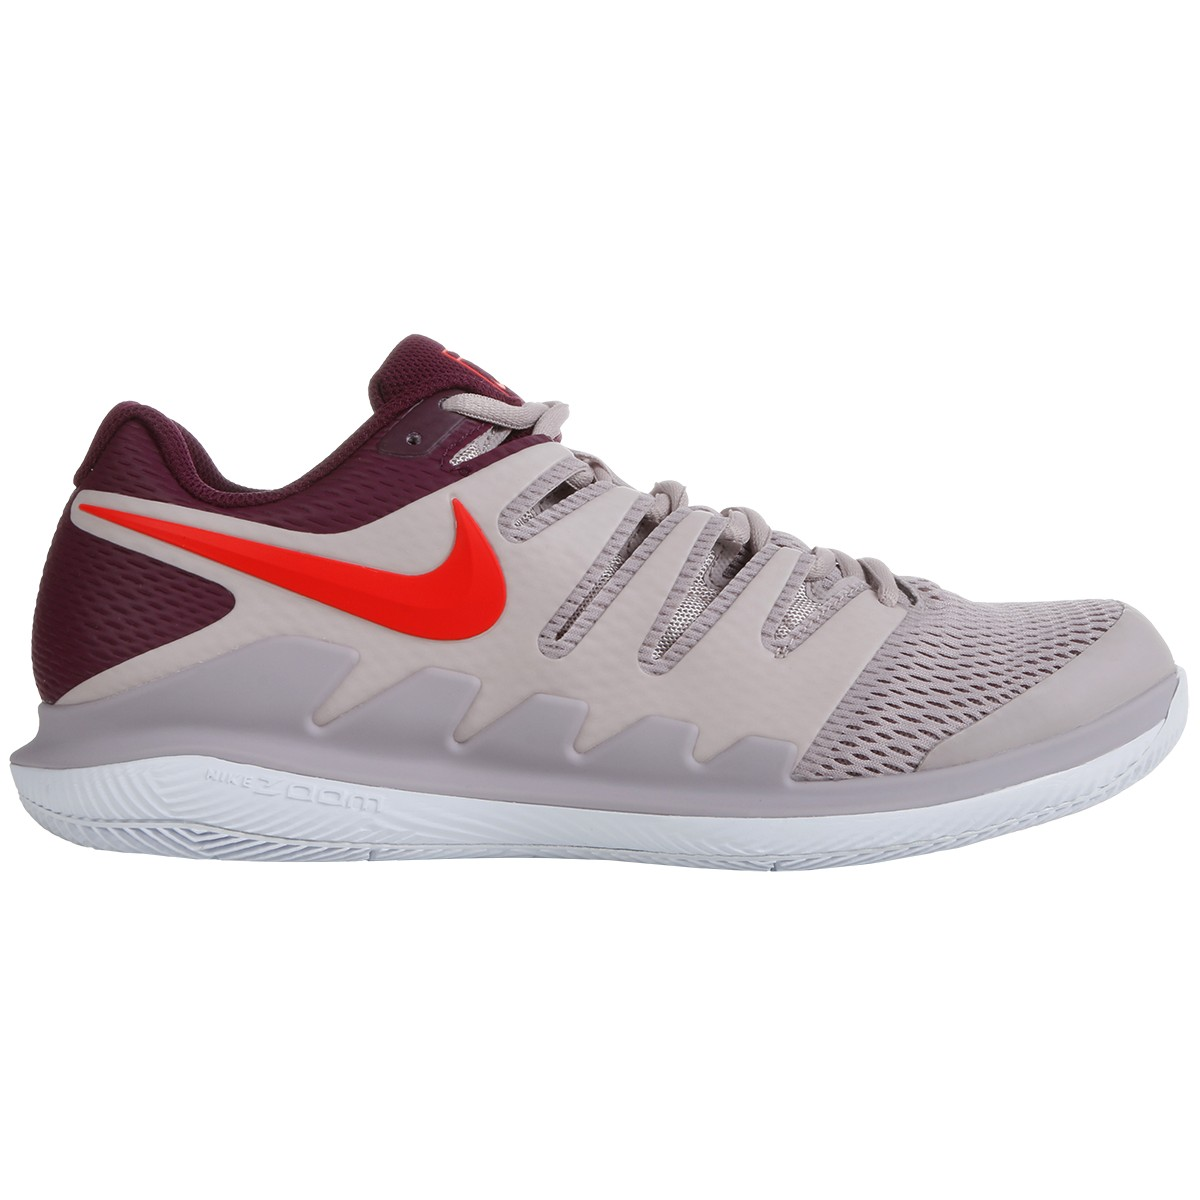 NIKE AIR ZOOM VAPOR 10 ALL SURFACES SHOES